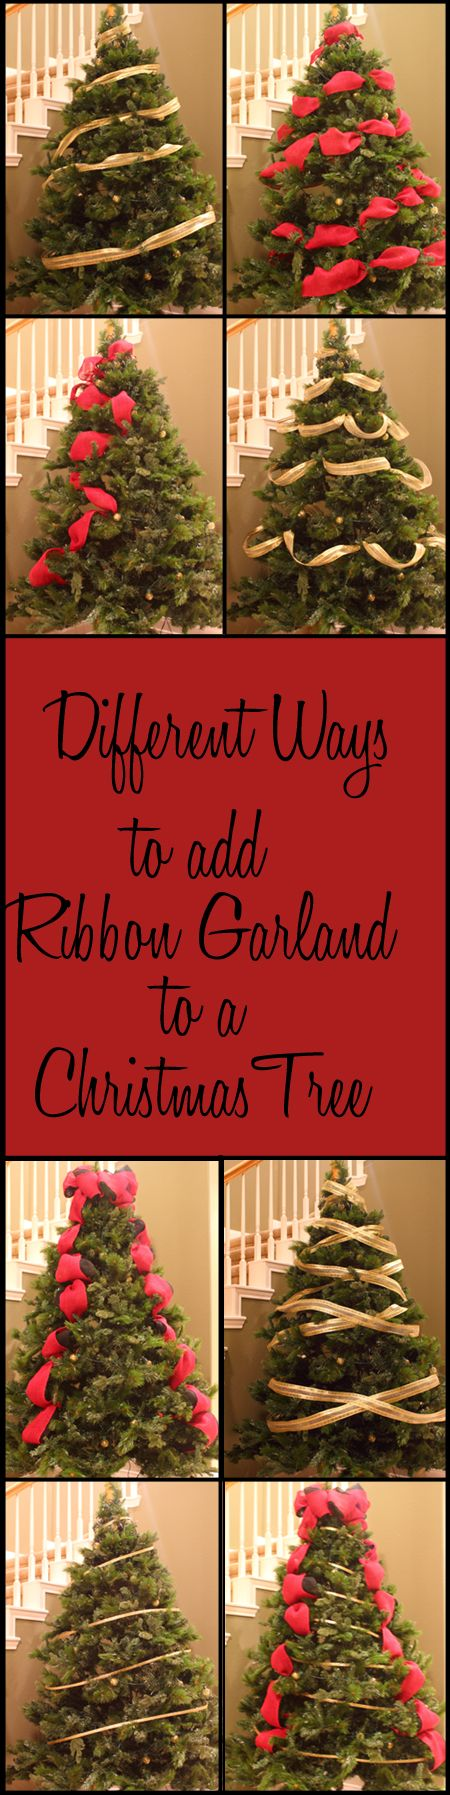 Best 25+ Christmas tree garland ideas on Pinterest | Discount ...